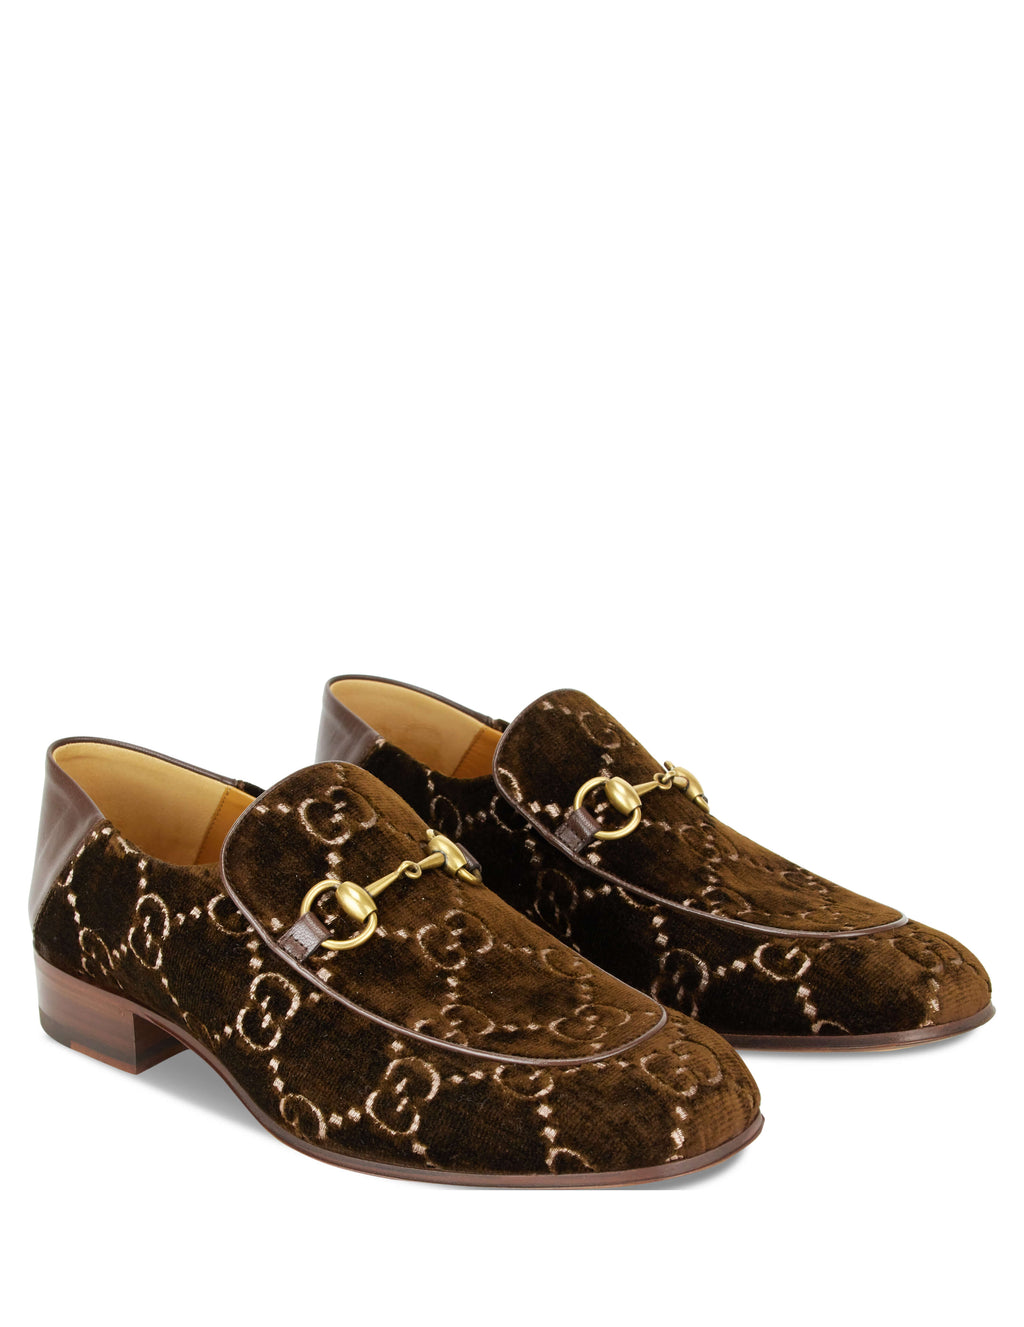 Gucci Men's Horsebit GG Velvet Loafers Brown 5262989JT802093